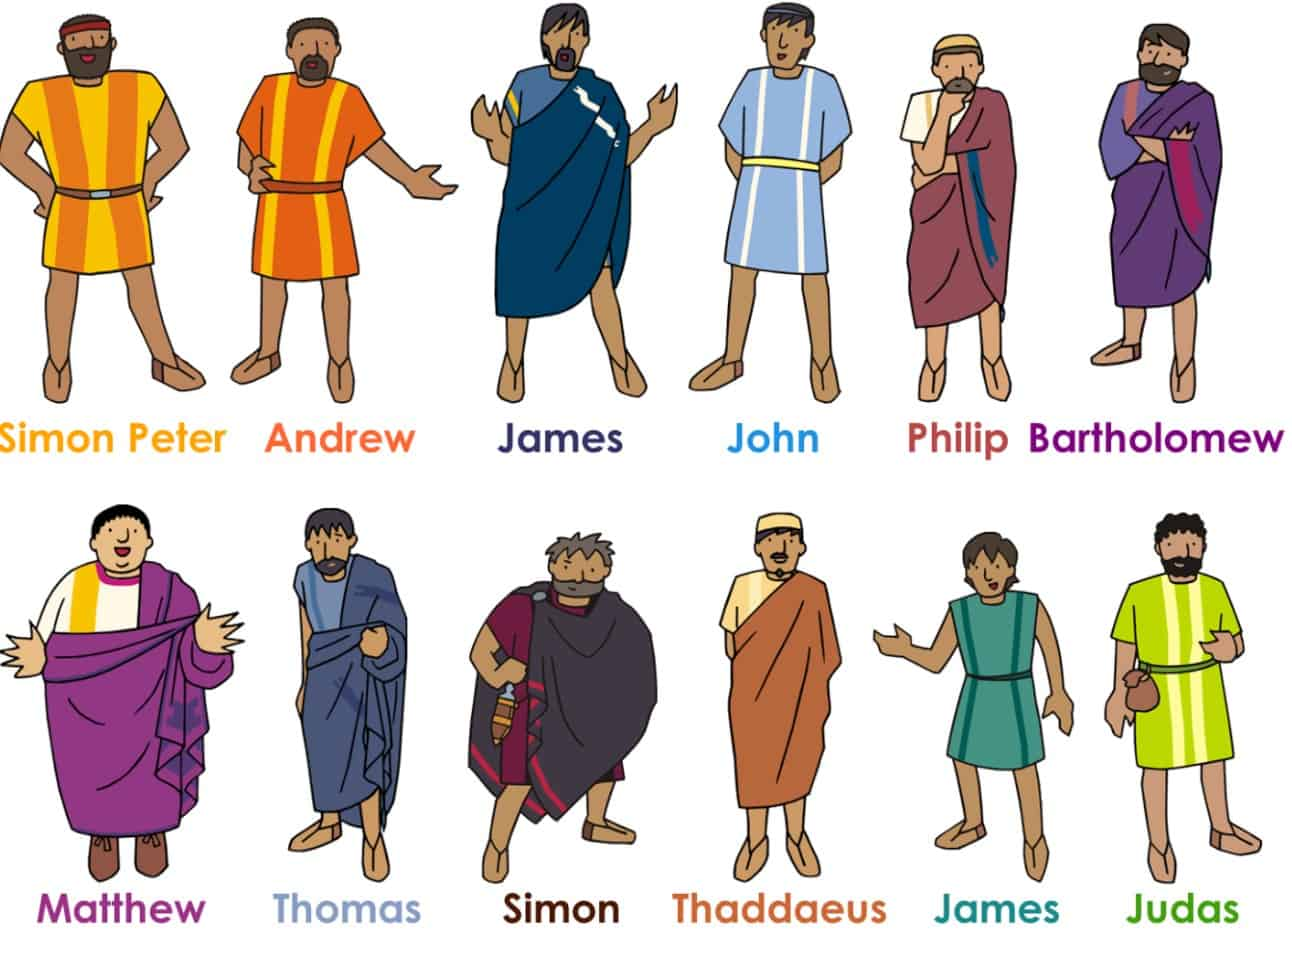 The Mission of the Twelve Apostles